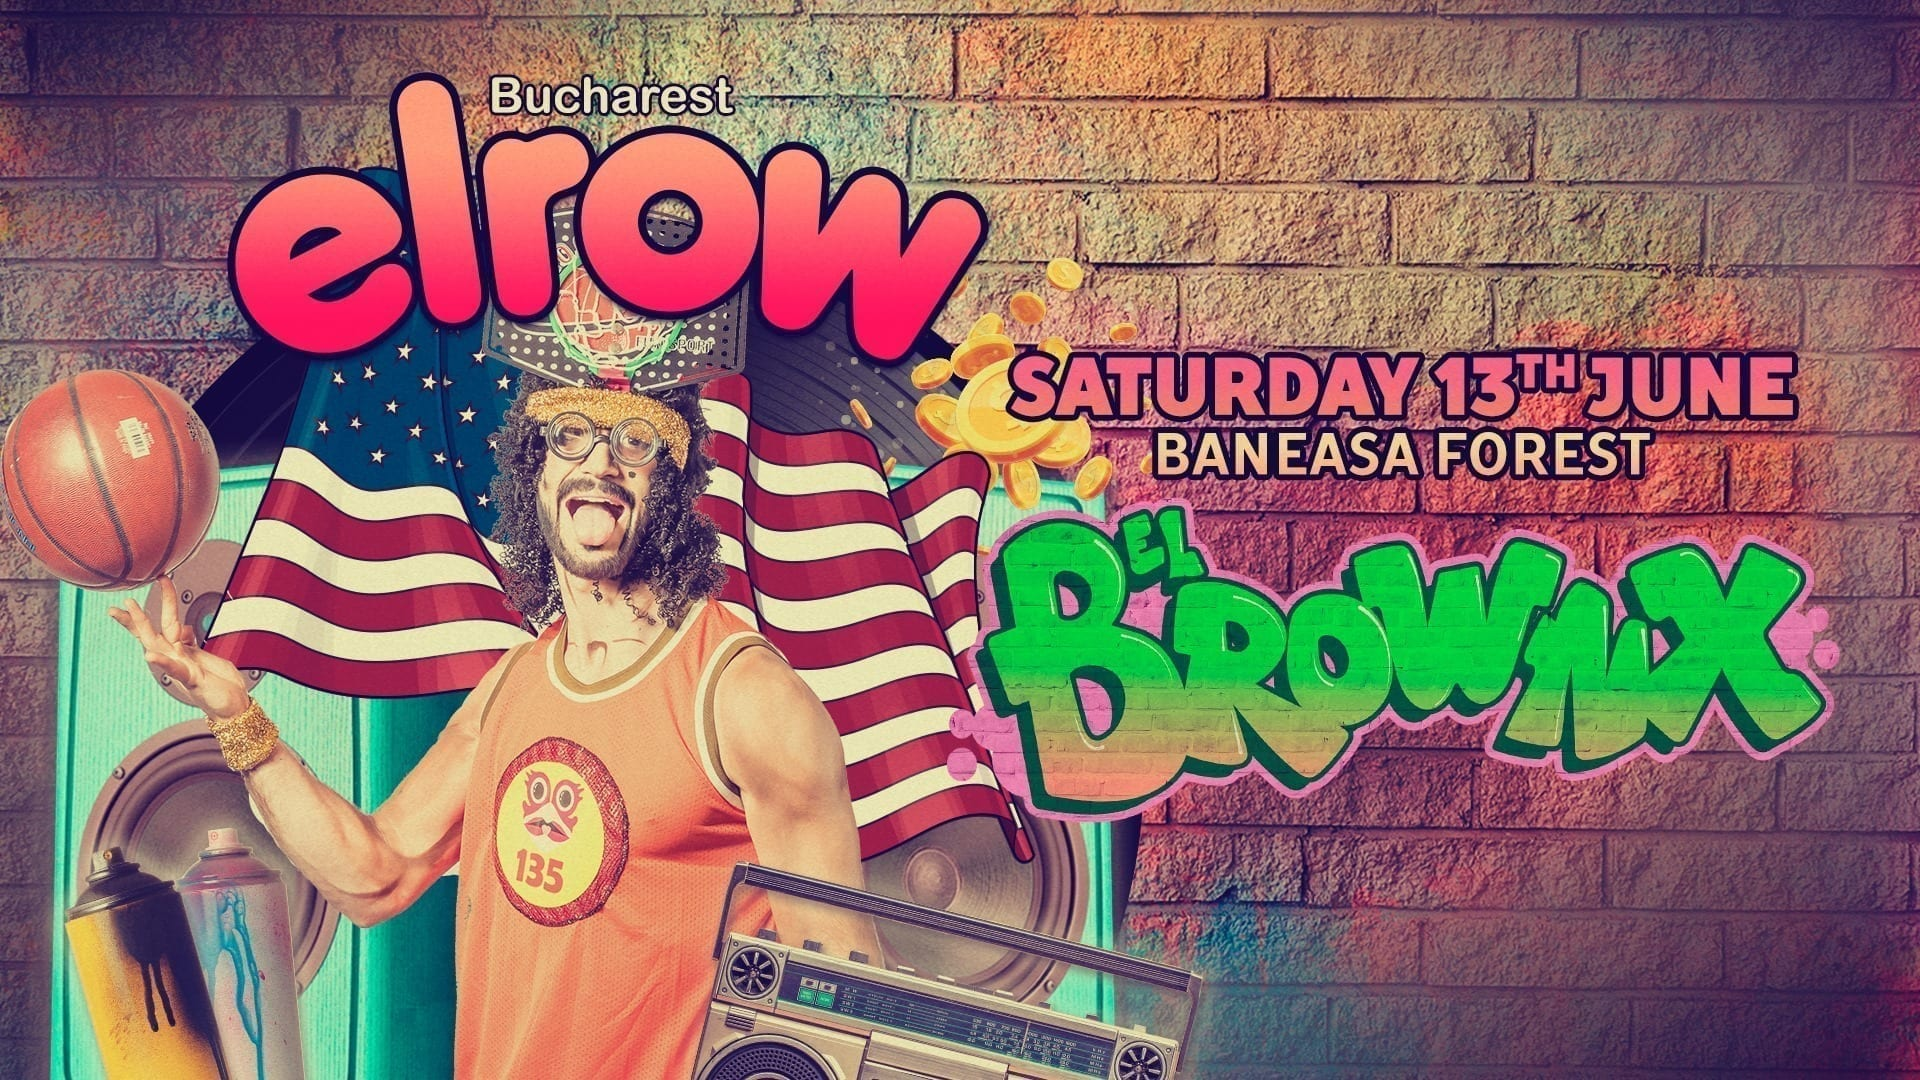 ELROW Bucharest on 13th June 2020